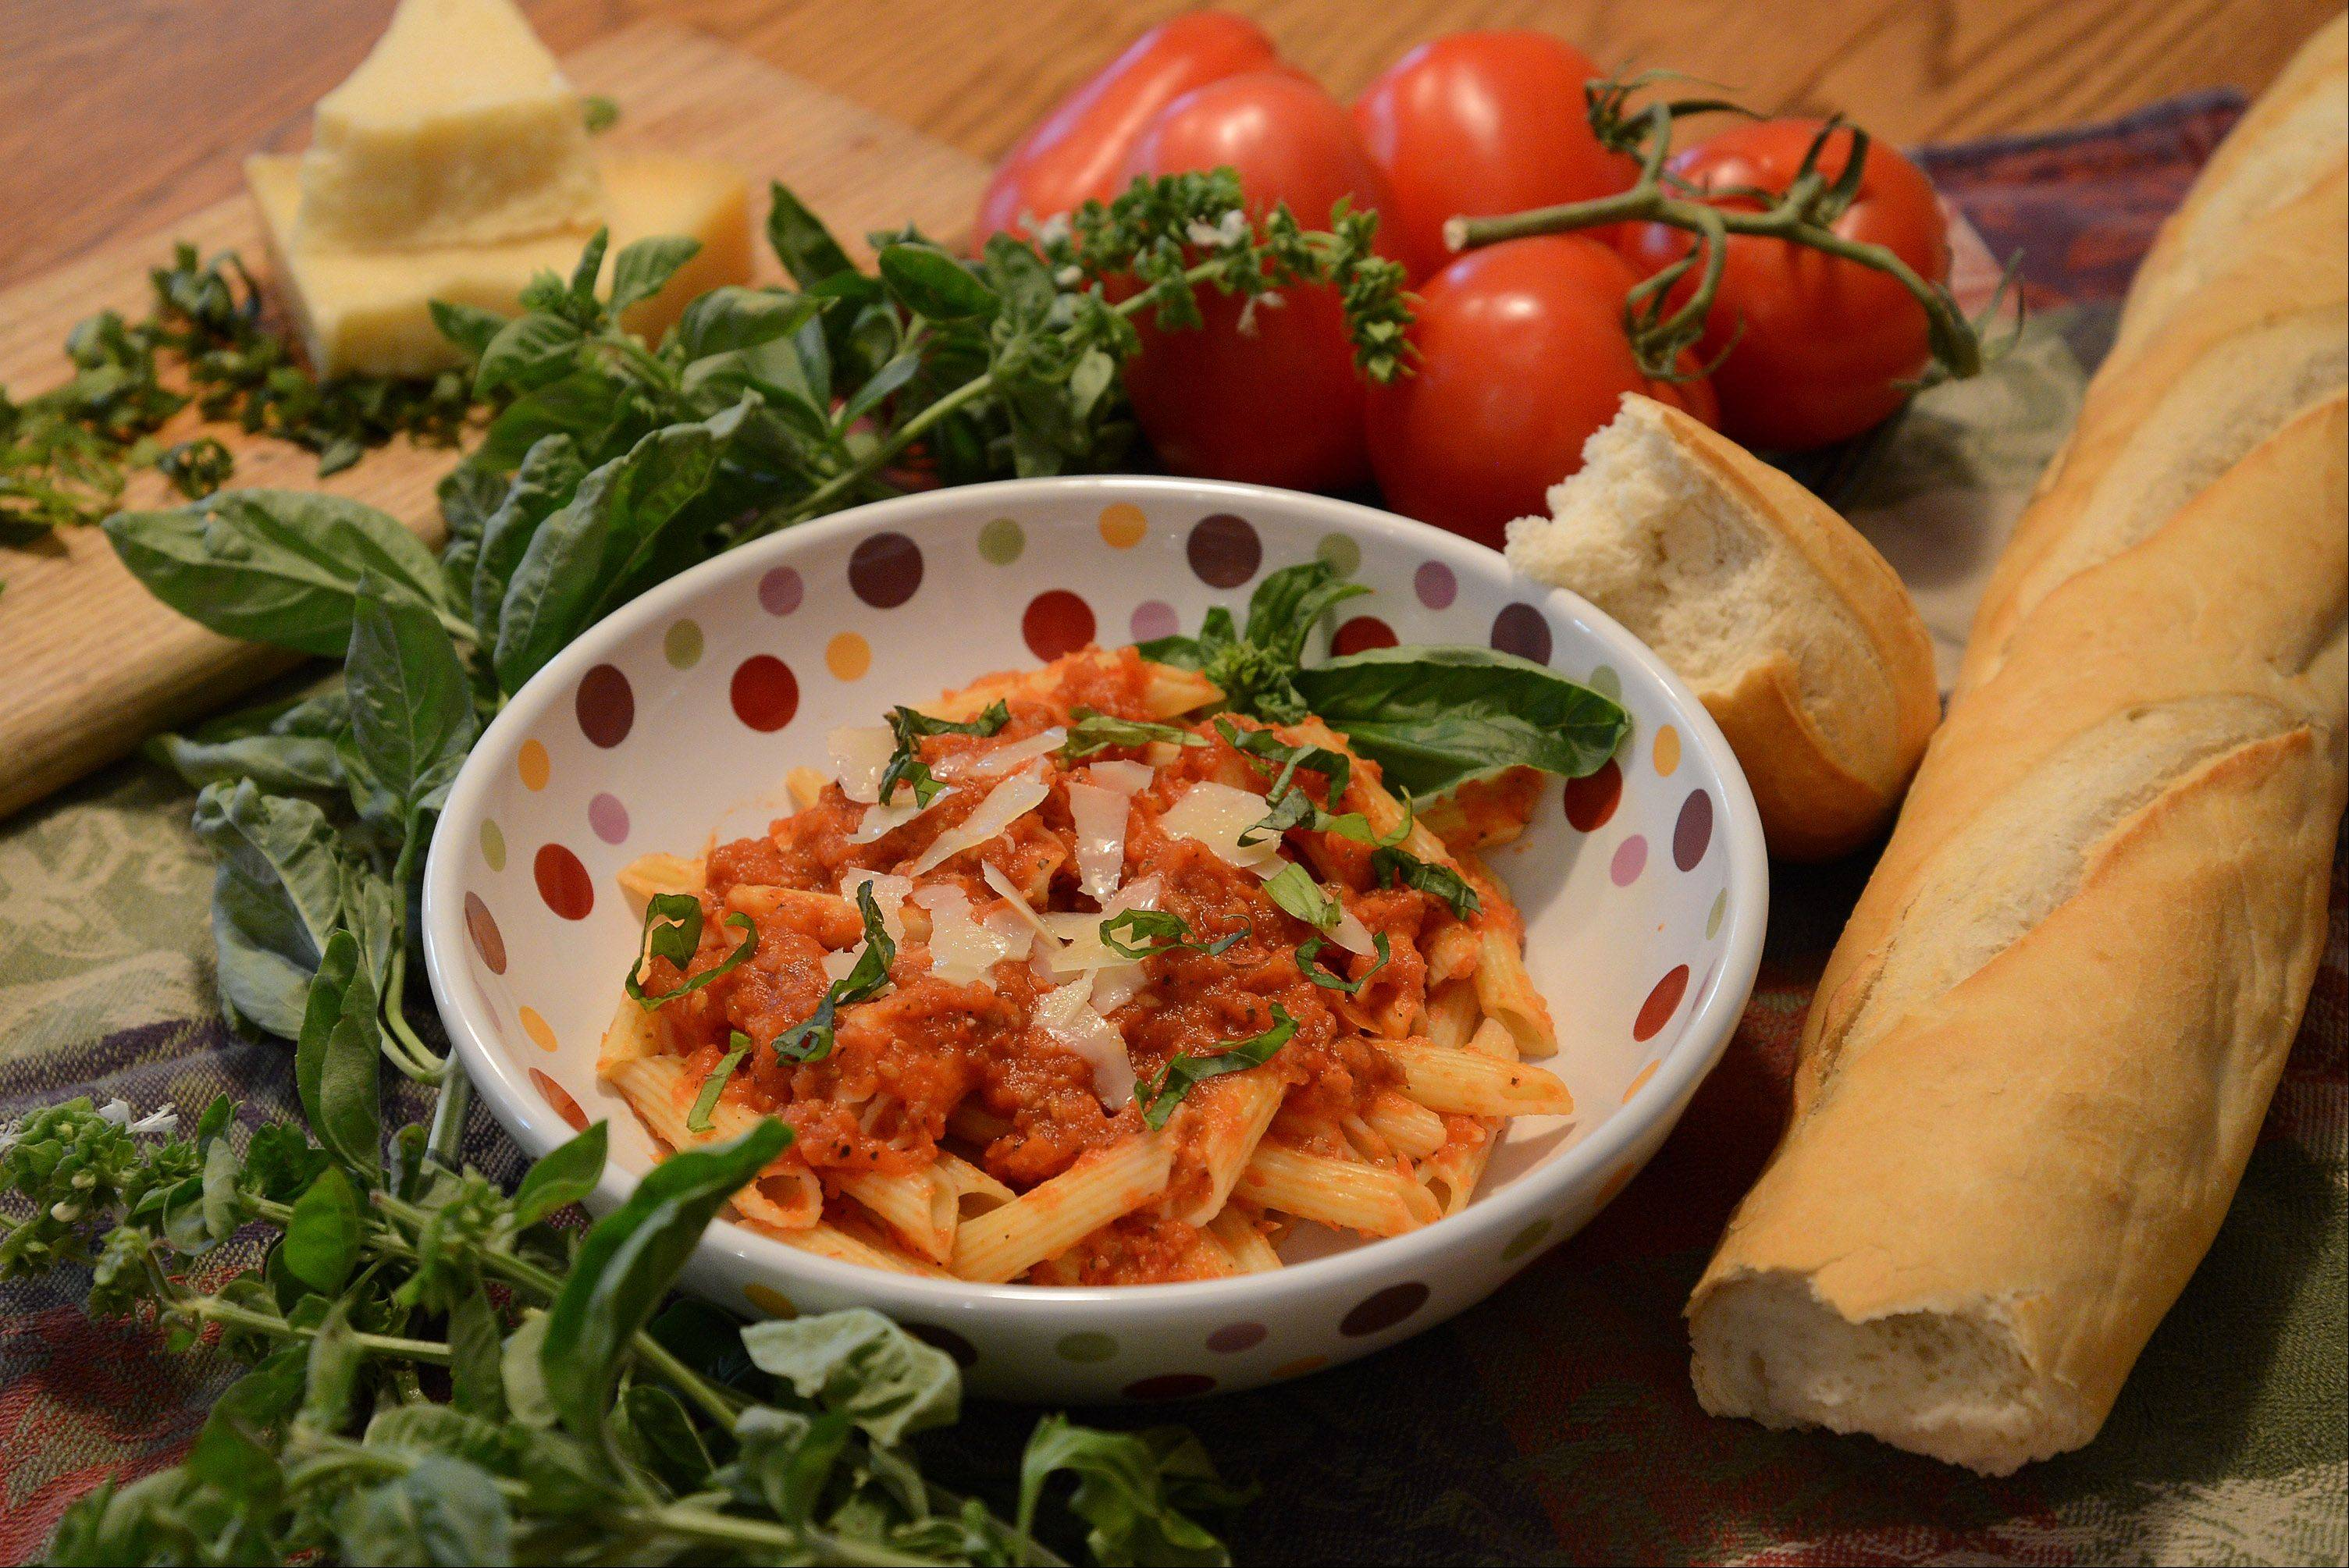 Roasted tomatoes that you don't have to peel make this arrabbiata sauce easy and delicious. Try it with penne pasta.